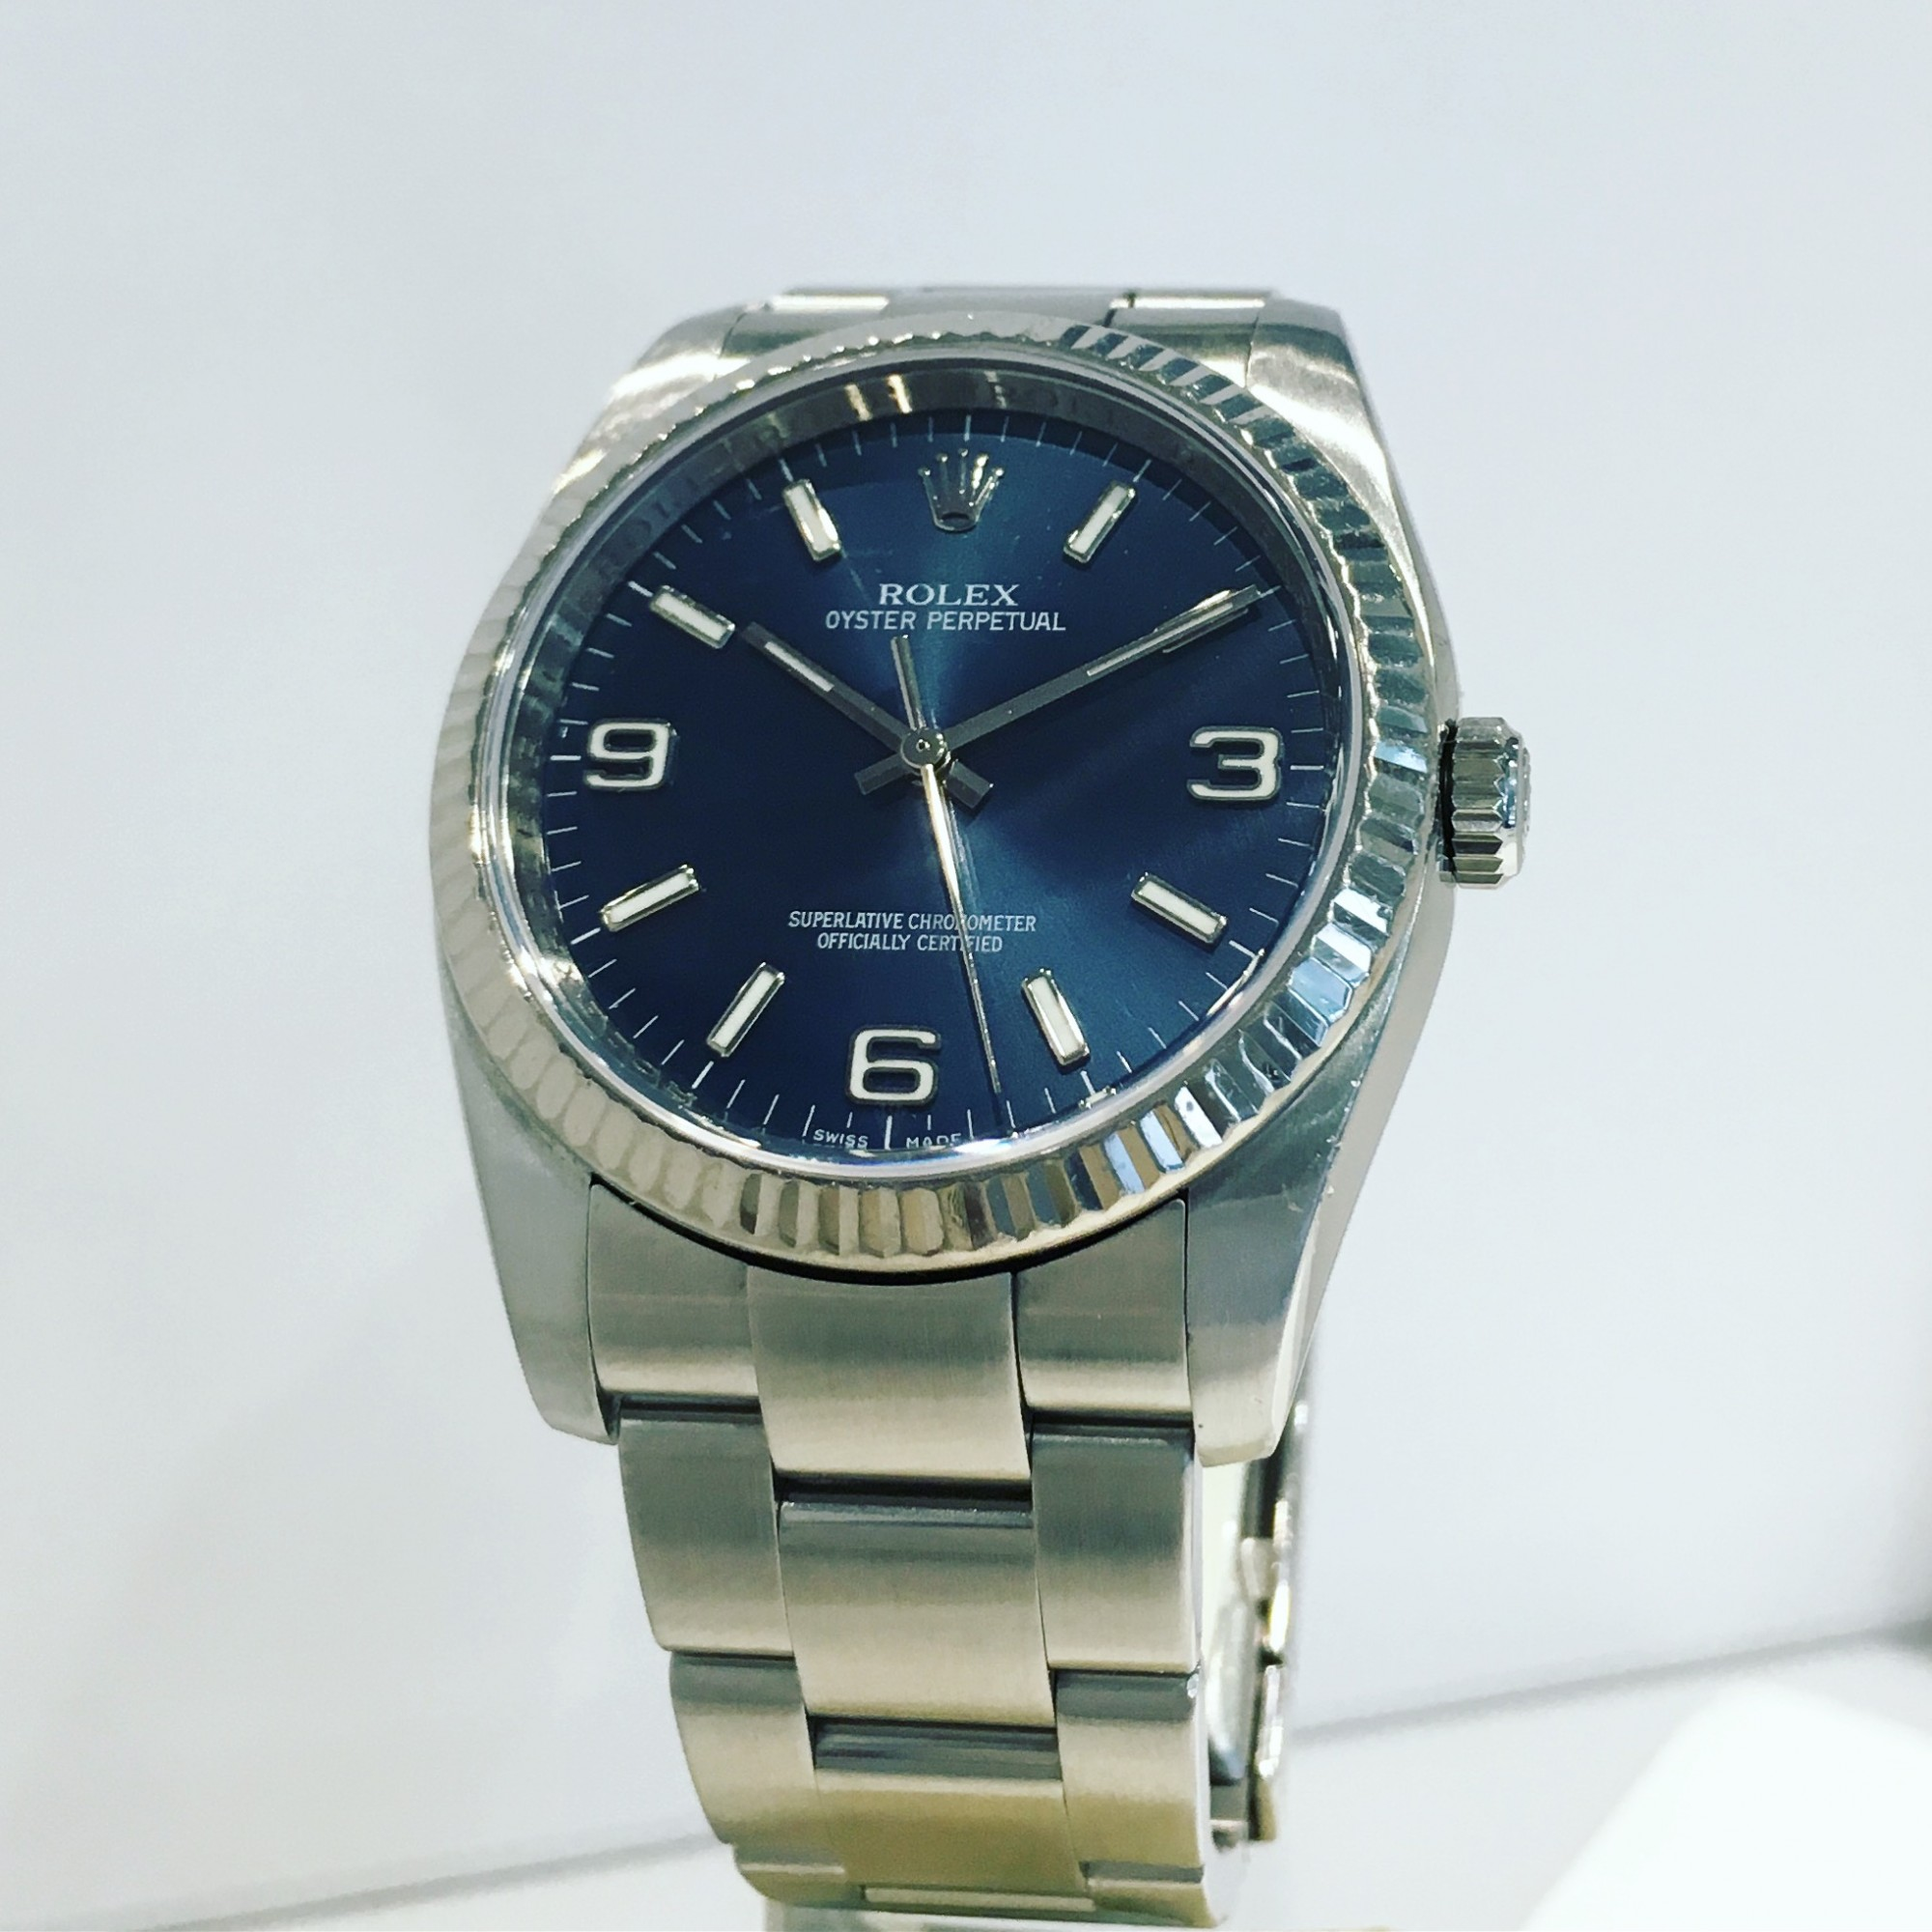 Montre occasion Rolex Oyster Perpetual 116034.